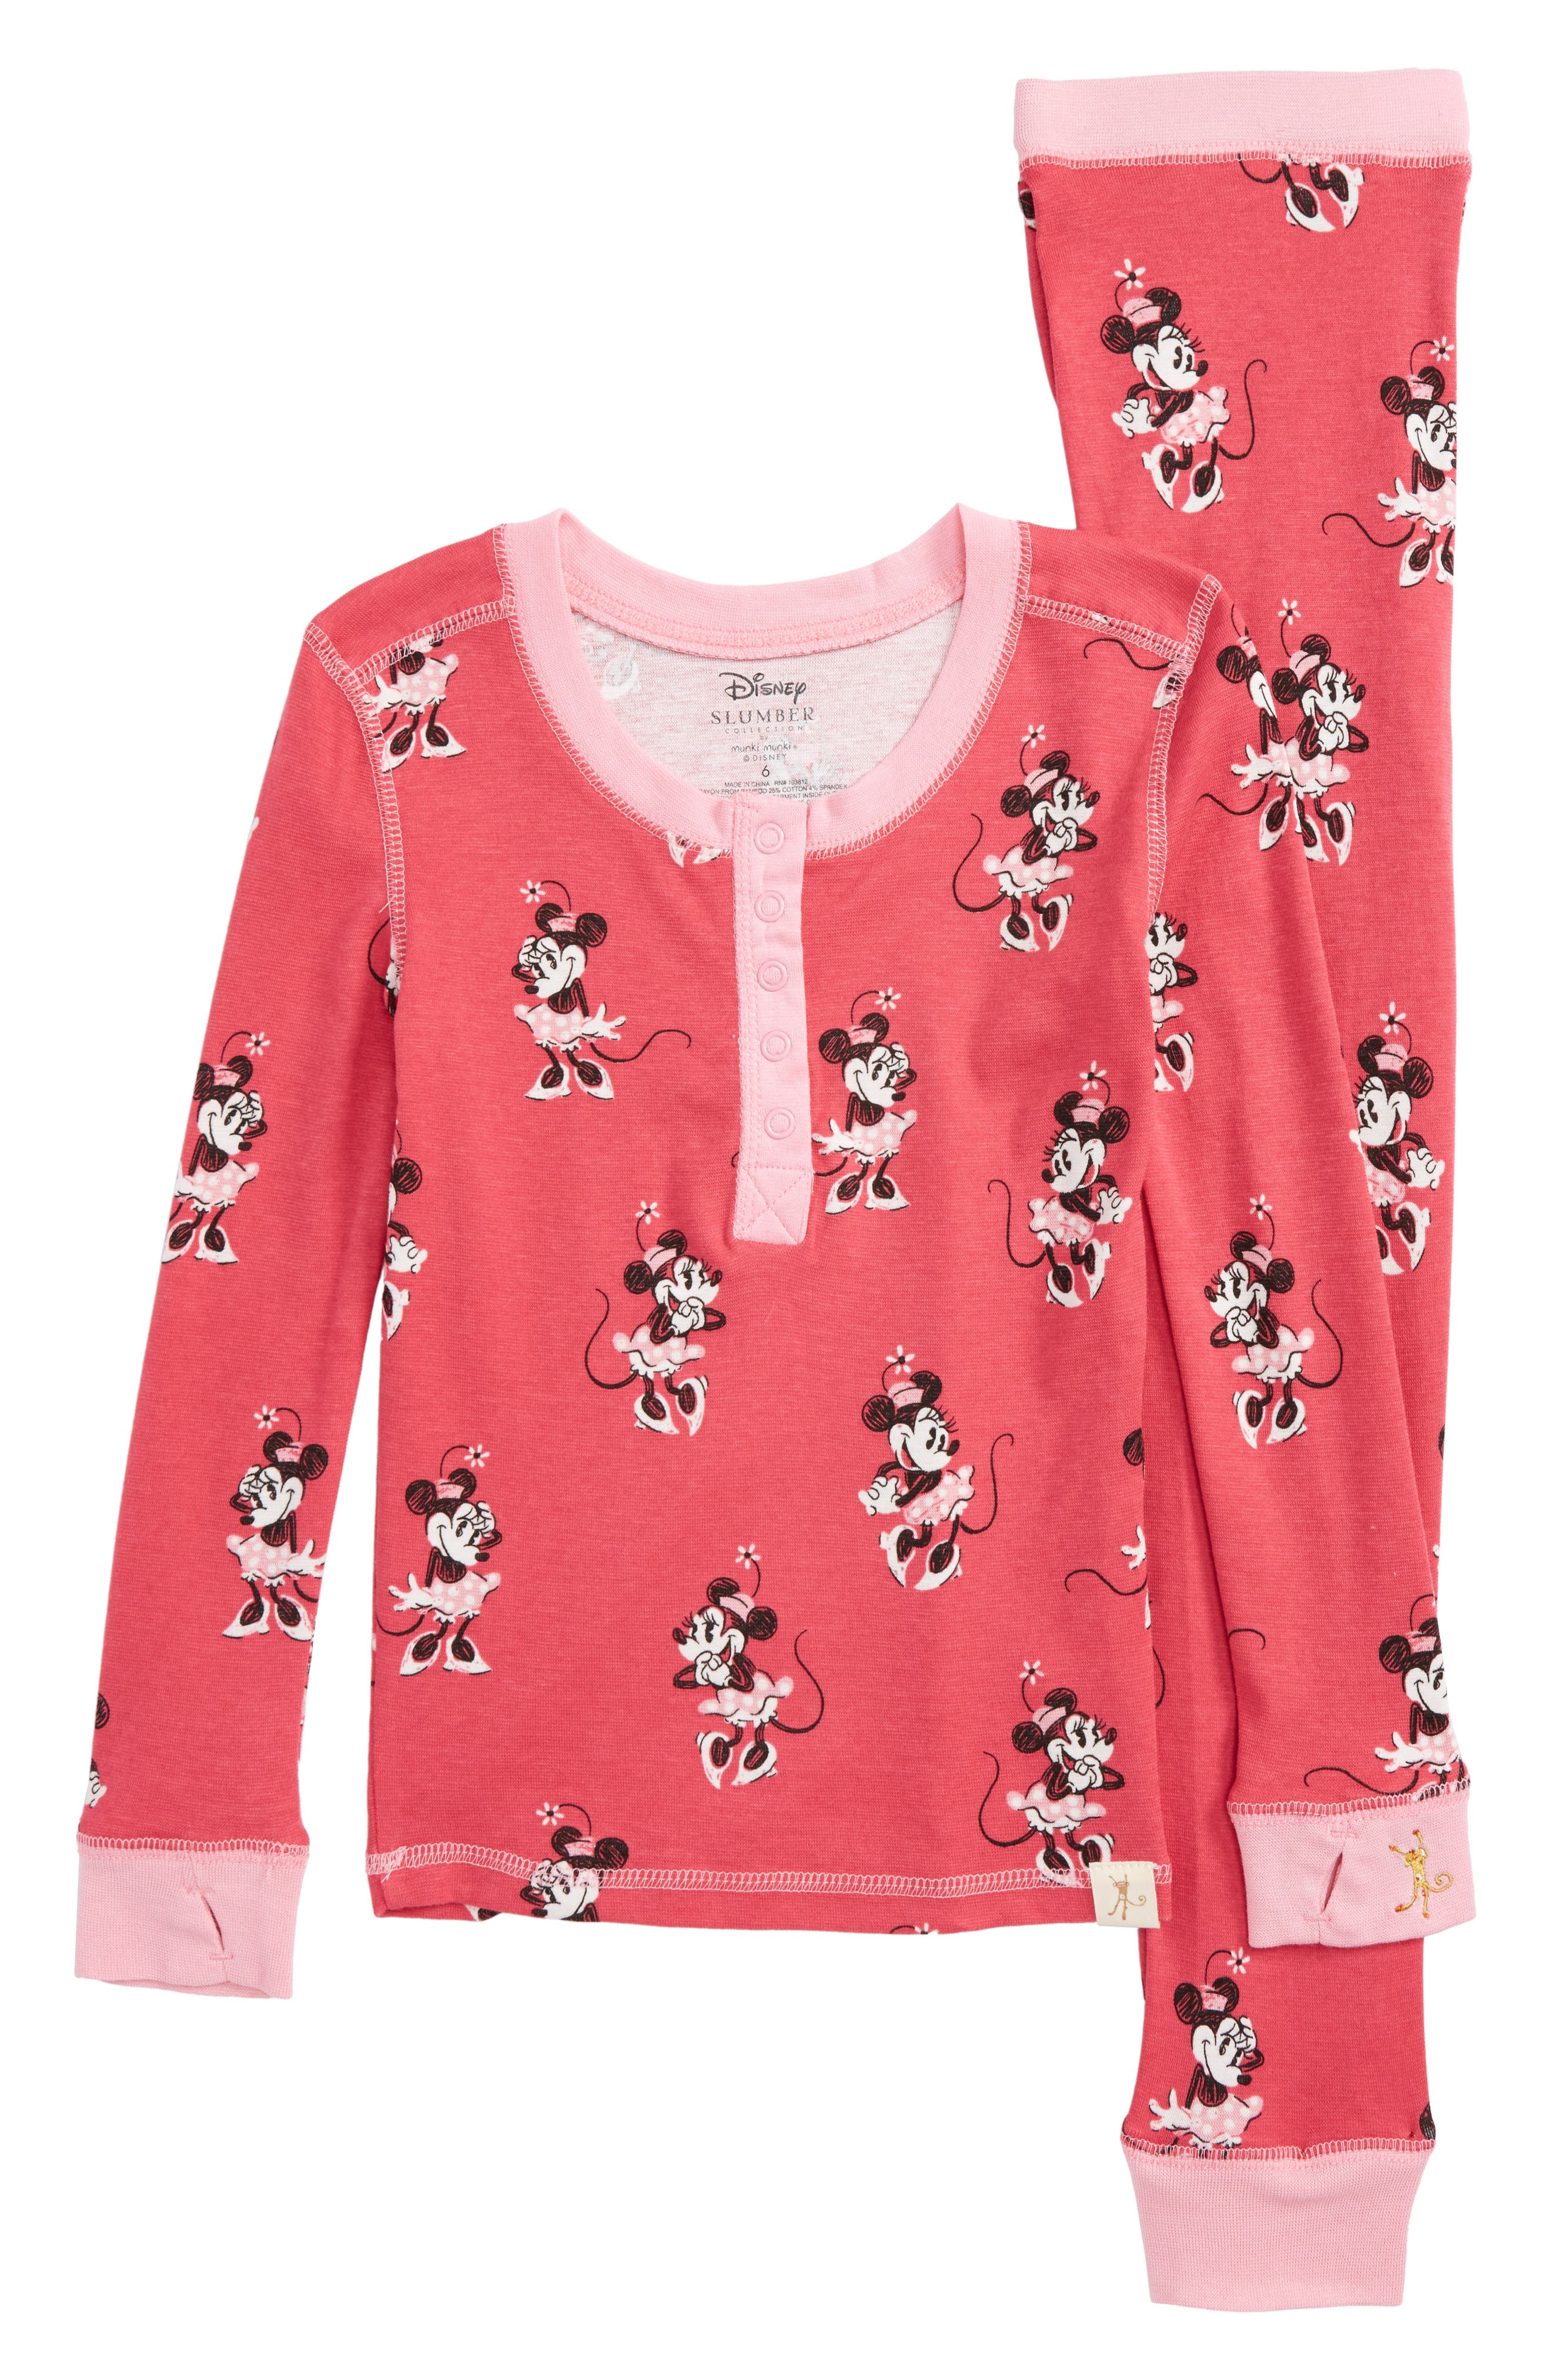 Disney – Minnie Mouse Fitted Two-Piece Pajamas,                             Main thumbnail 1, color,                             663